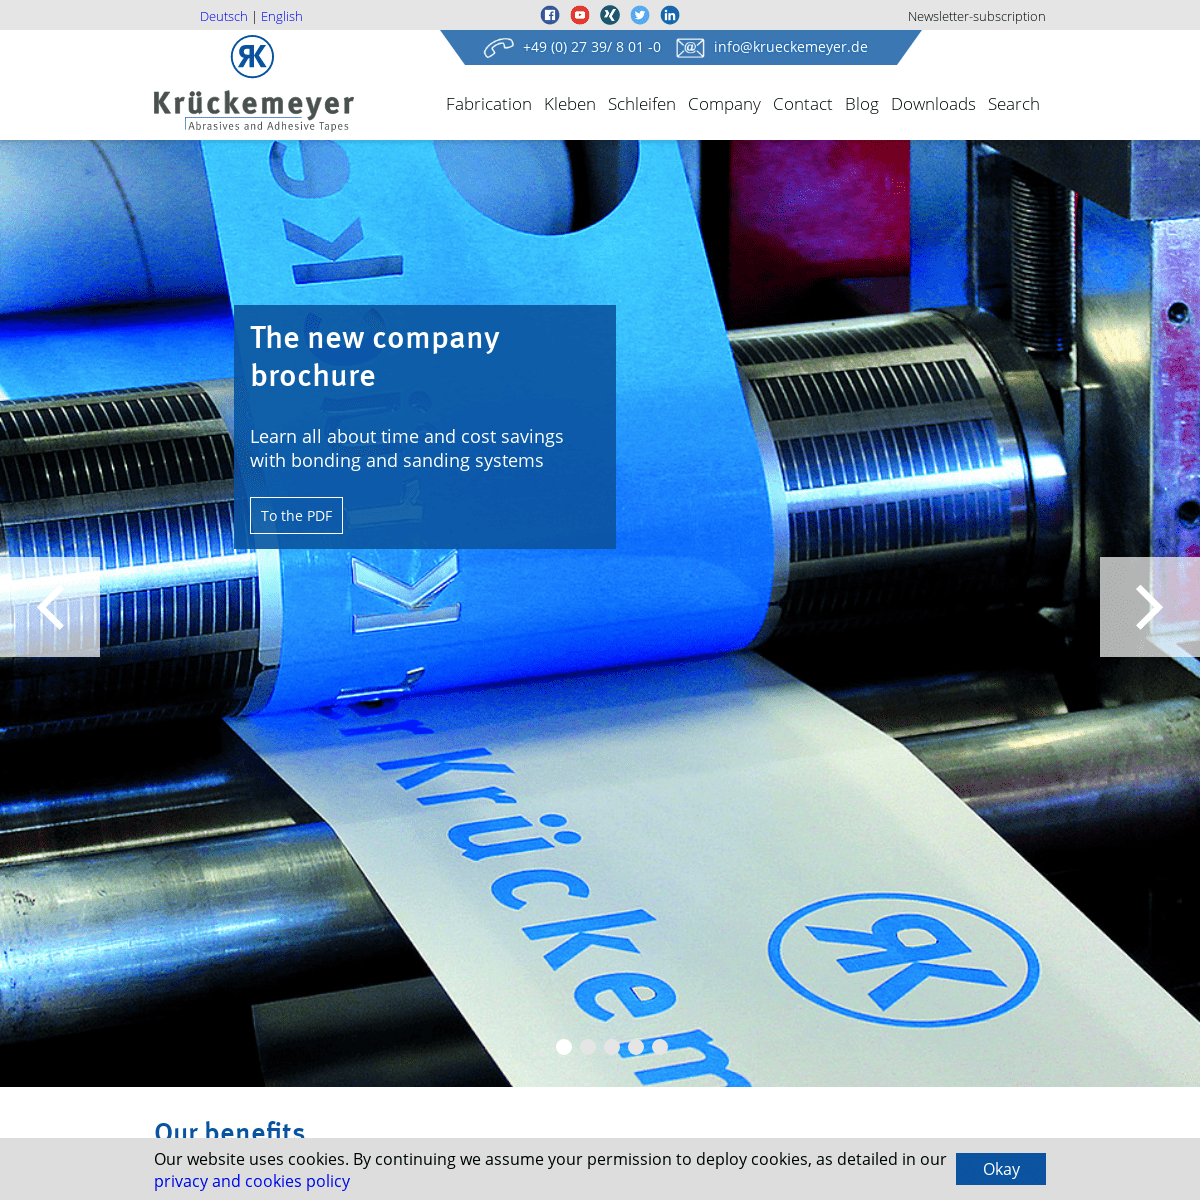 Your specialist for abrasives and adhesives - Krückemeyer GmbH